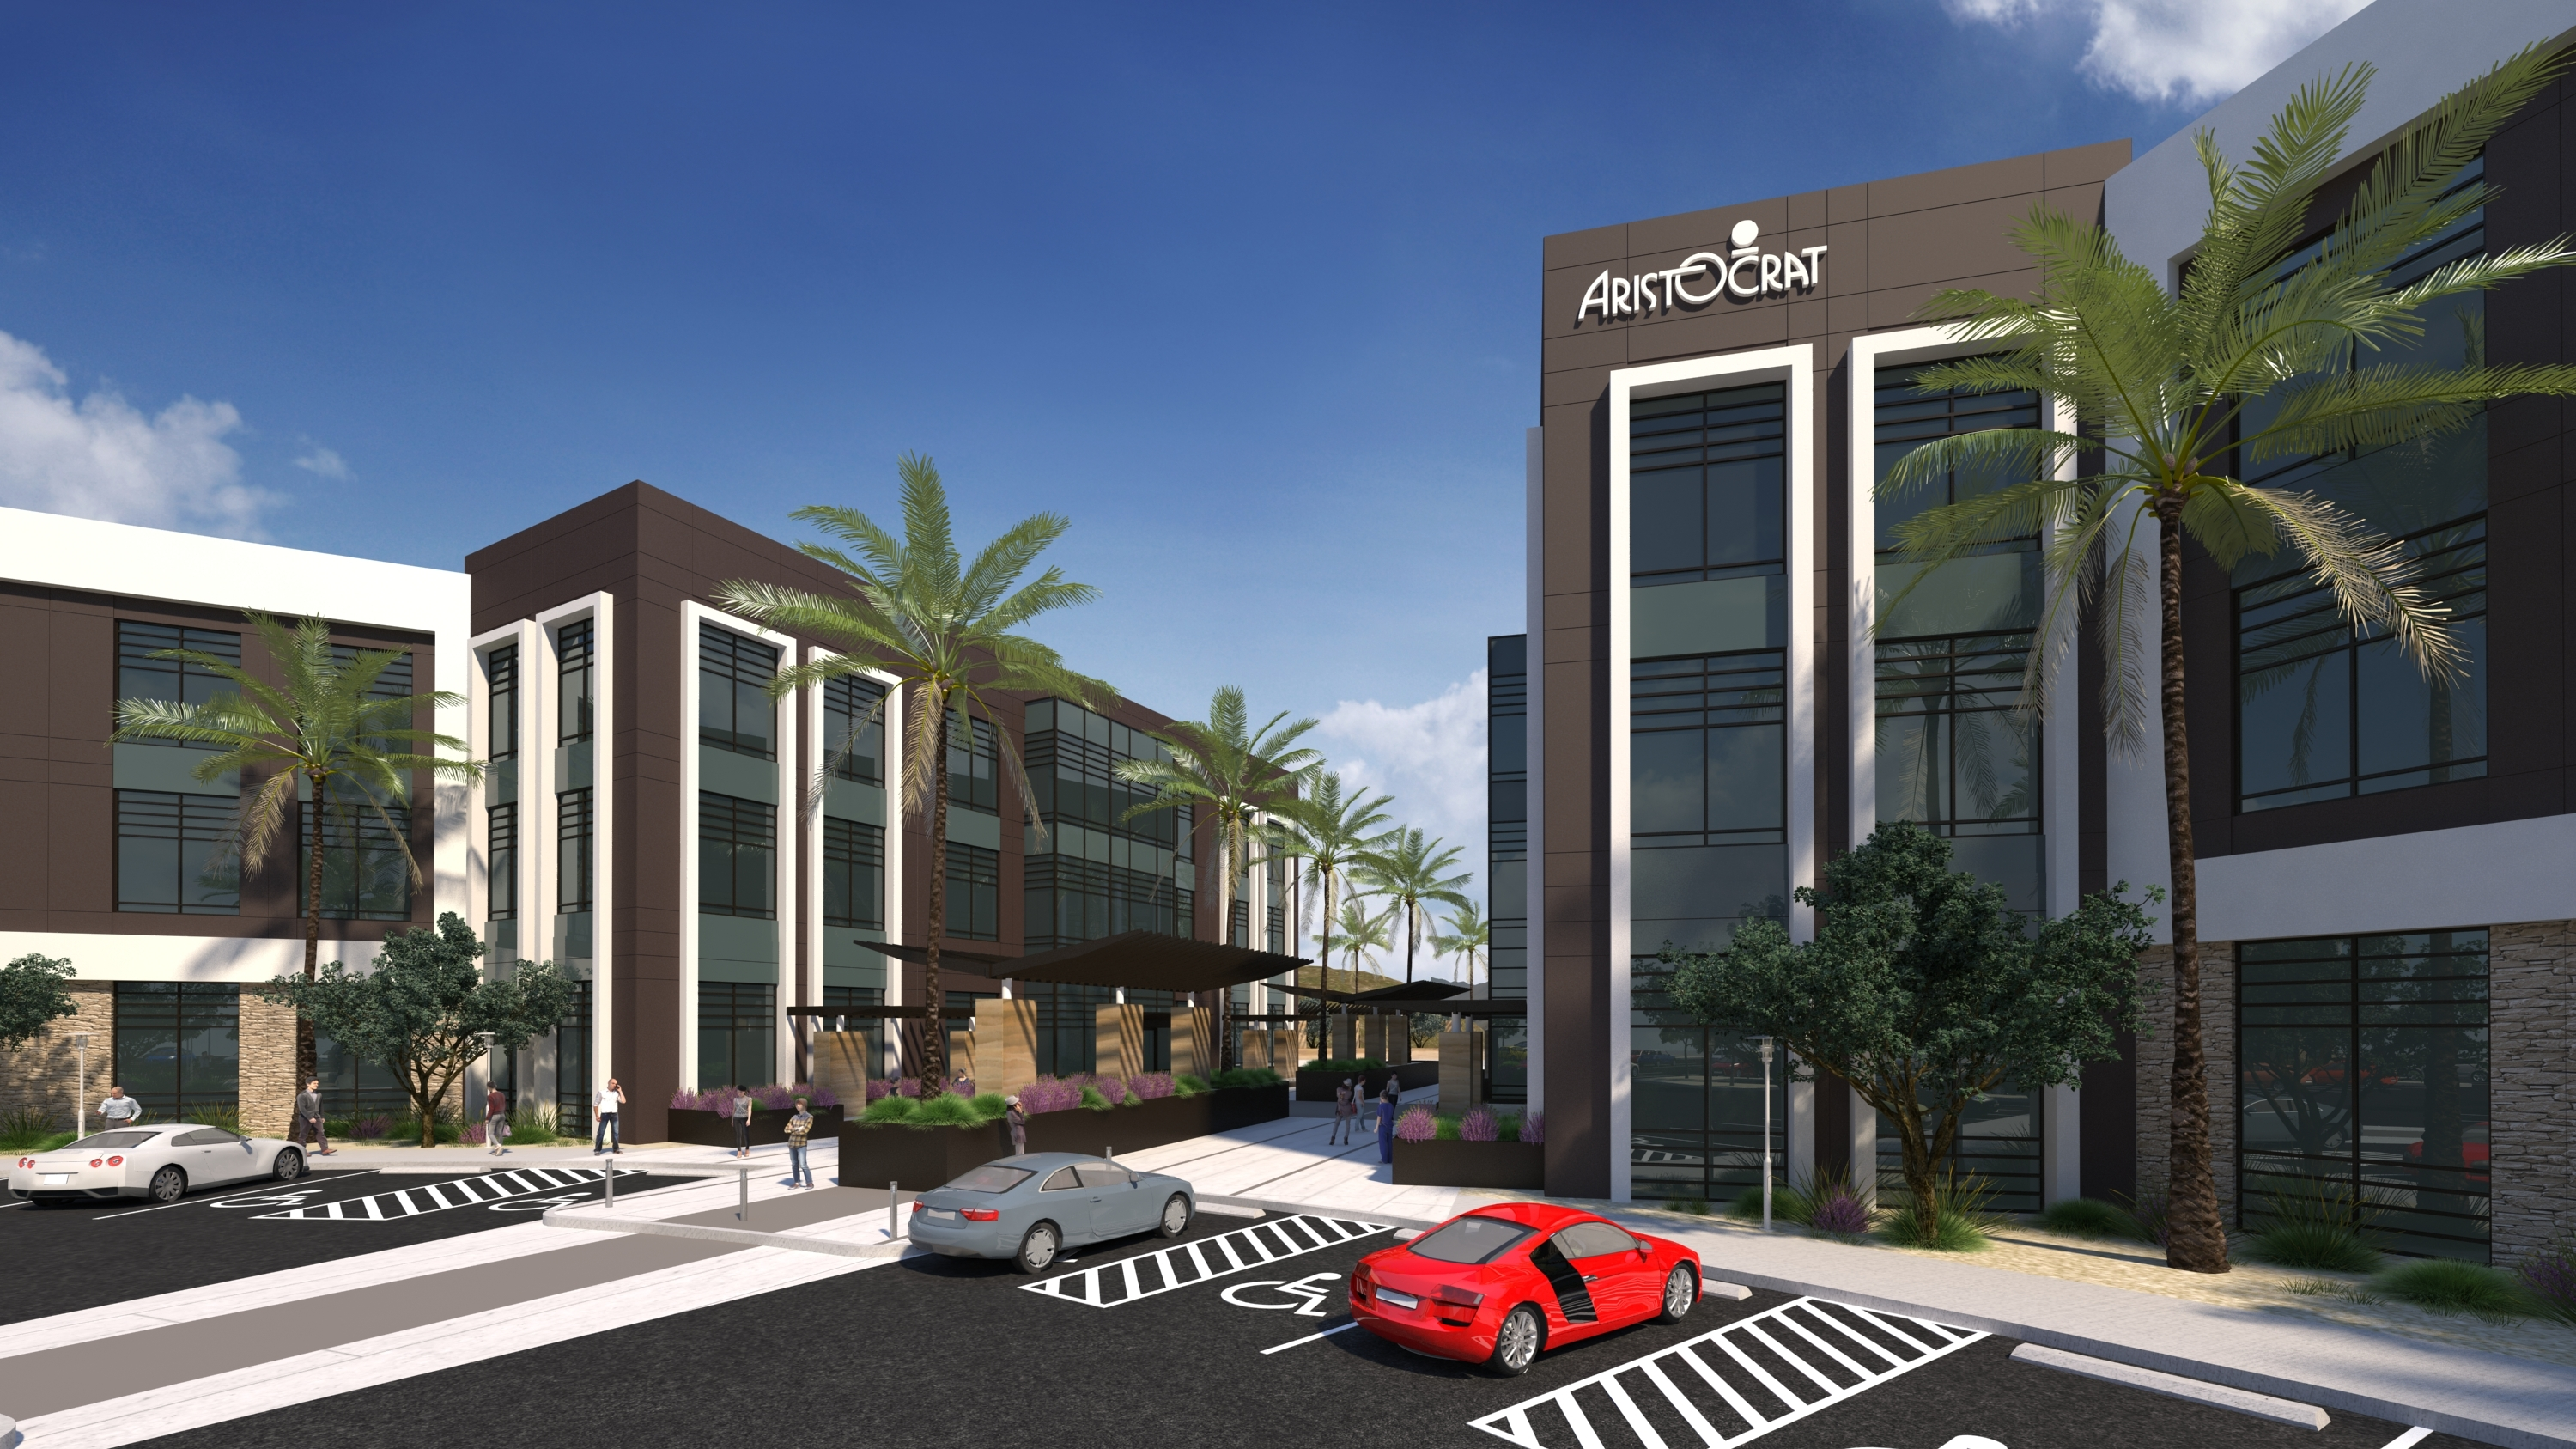 New campus for Aristocrat Technologies, Inc. in the Summerlin master planned community (Photo: EV&A Architects)